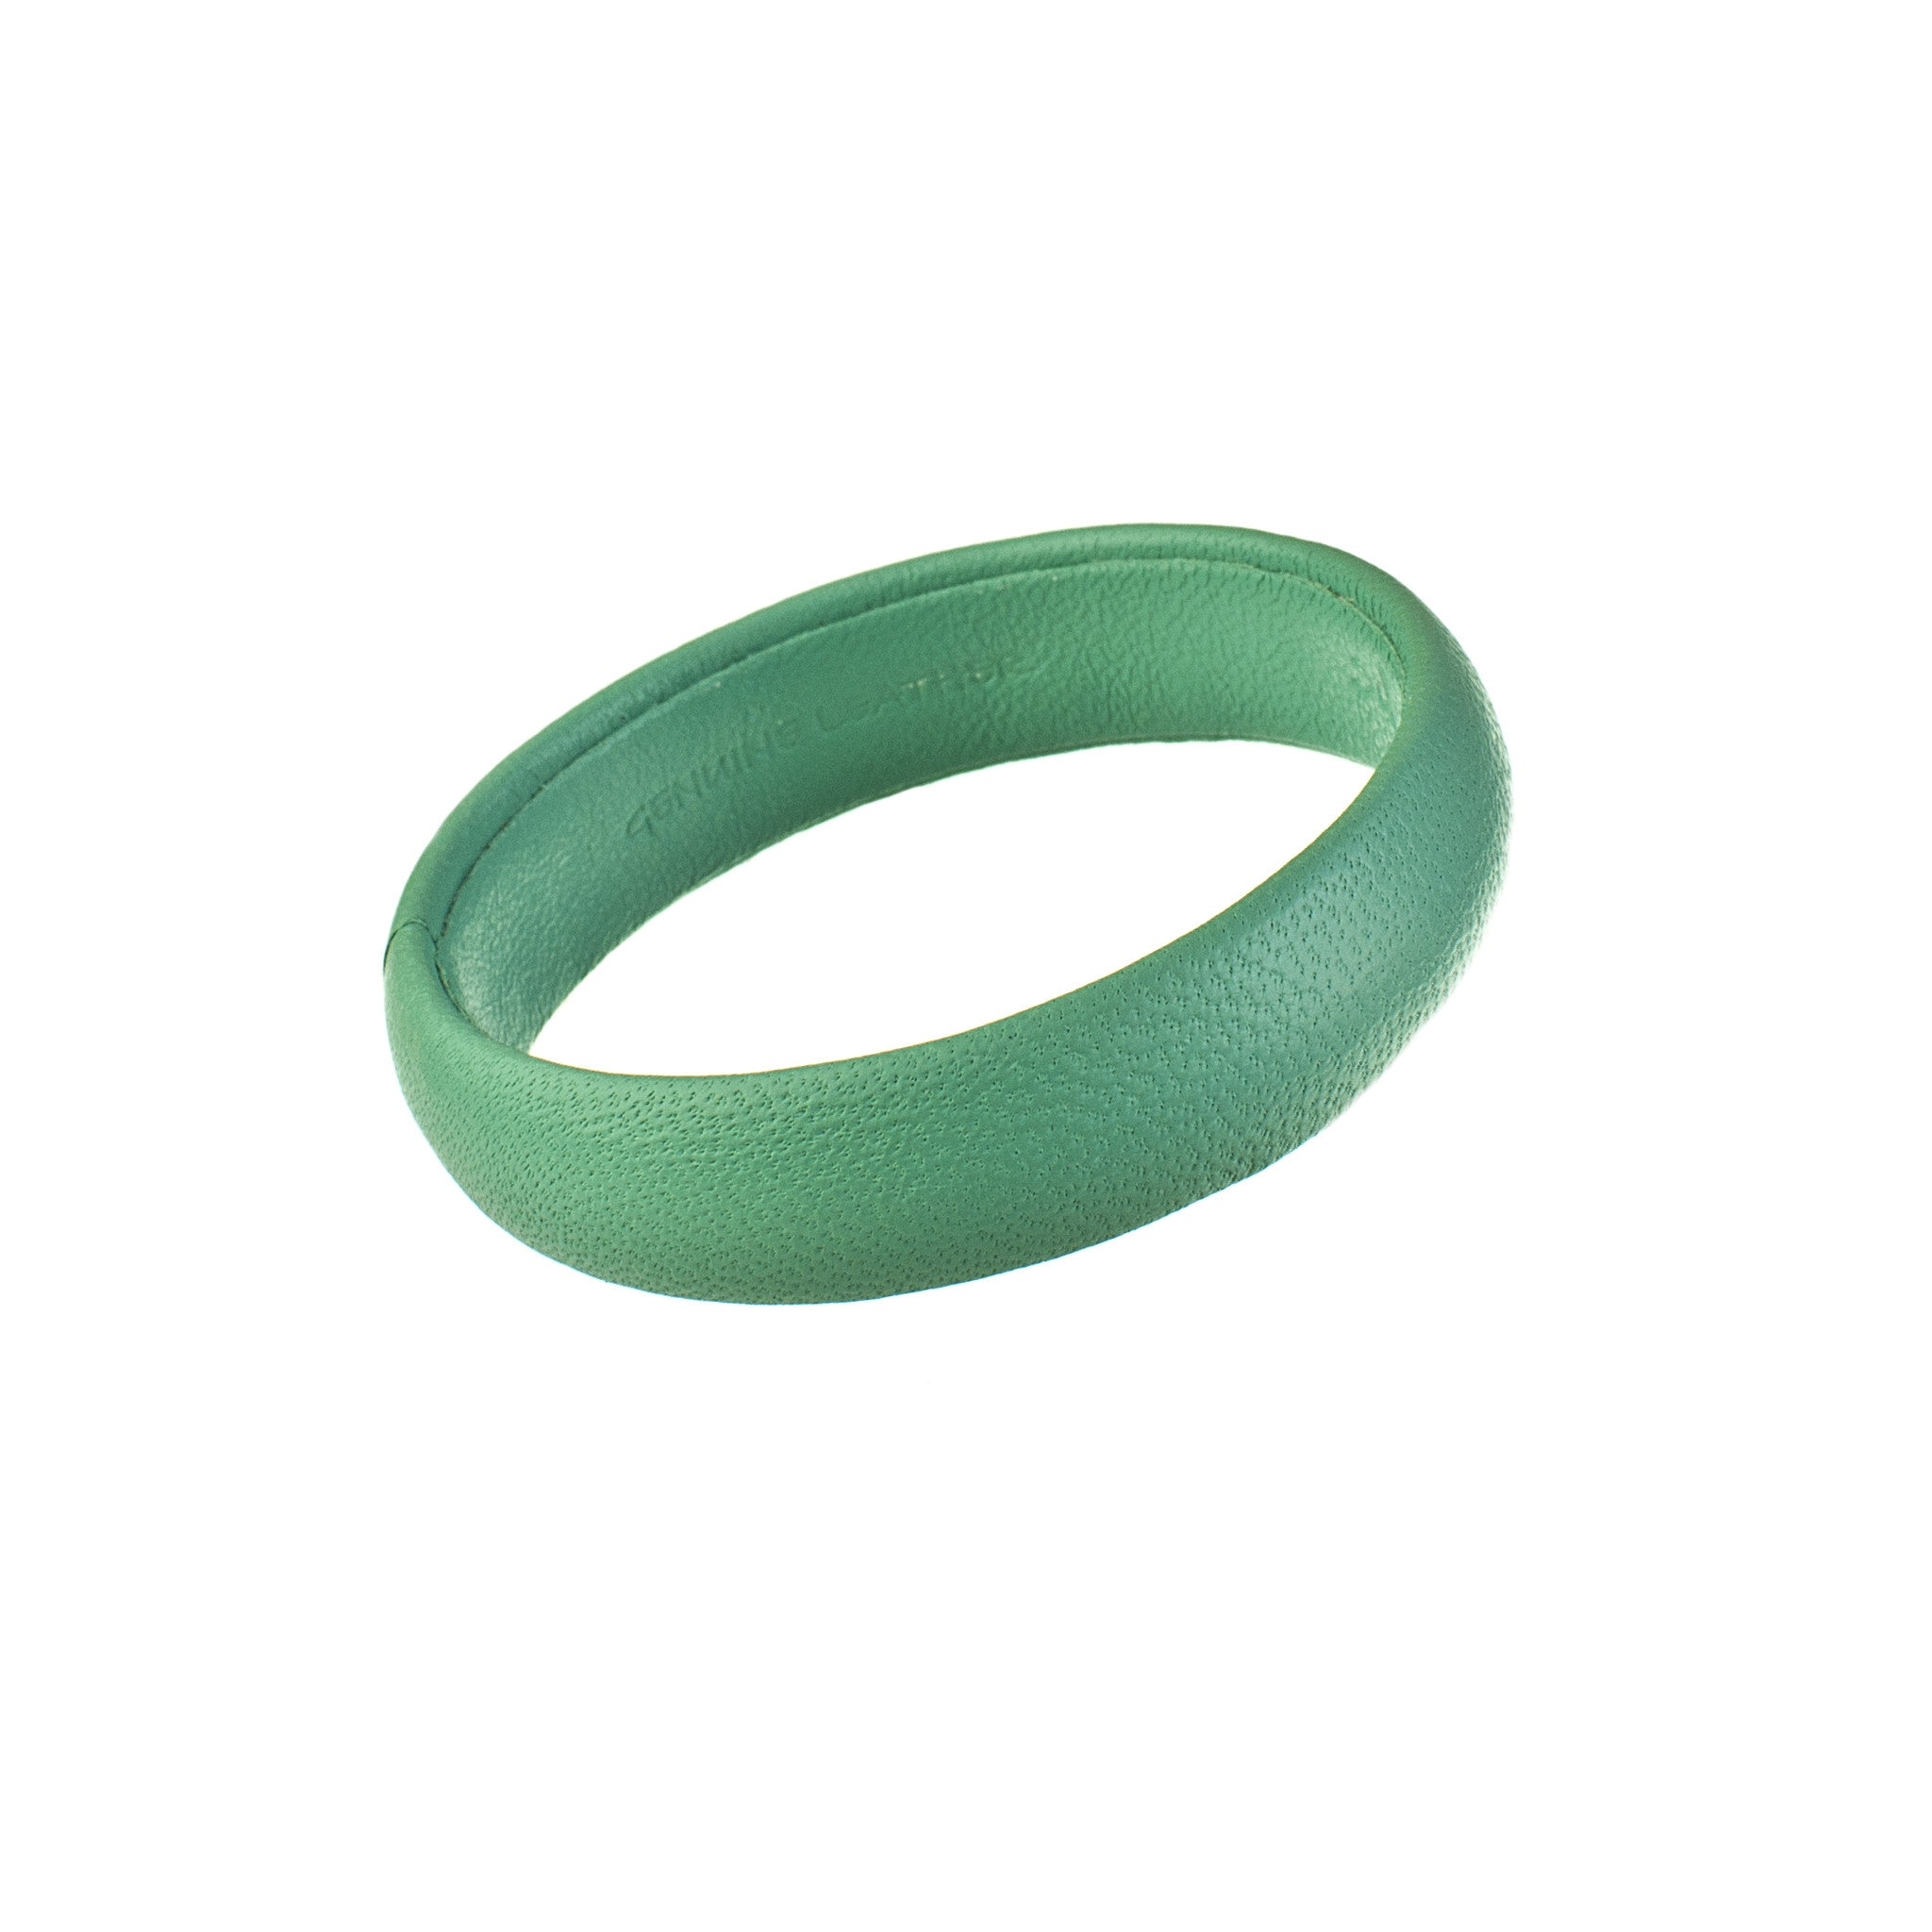 Seafoam Green Blue Narrow Leather Bangle Bracelet sd1Twenty5 single